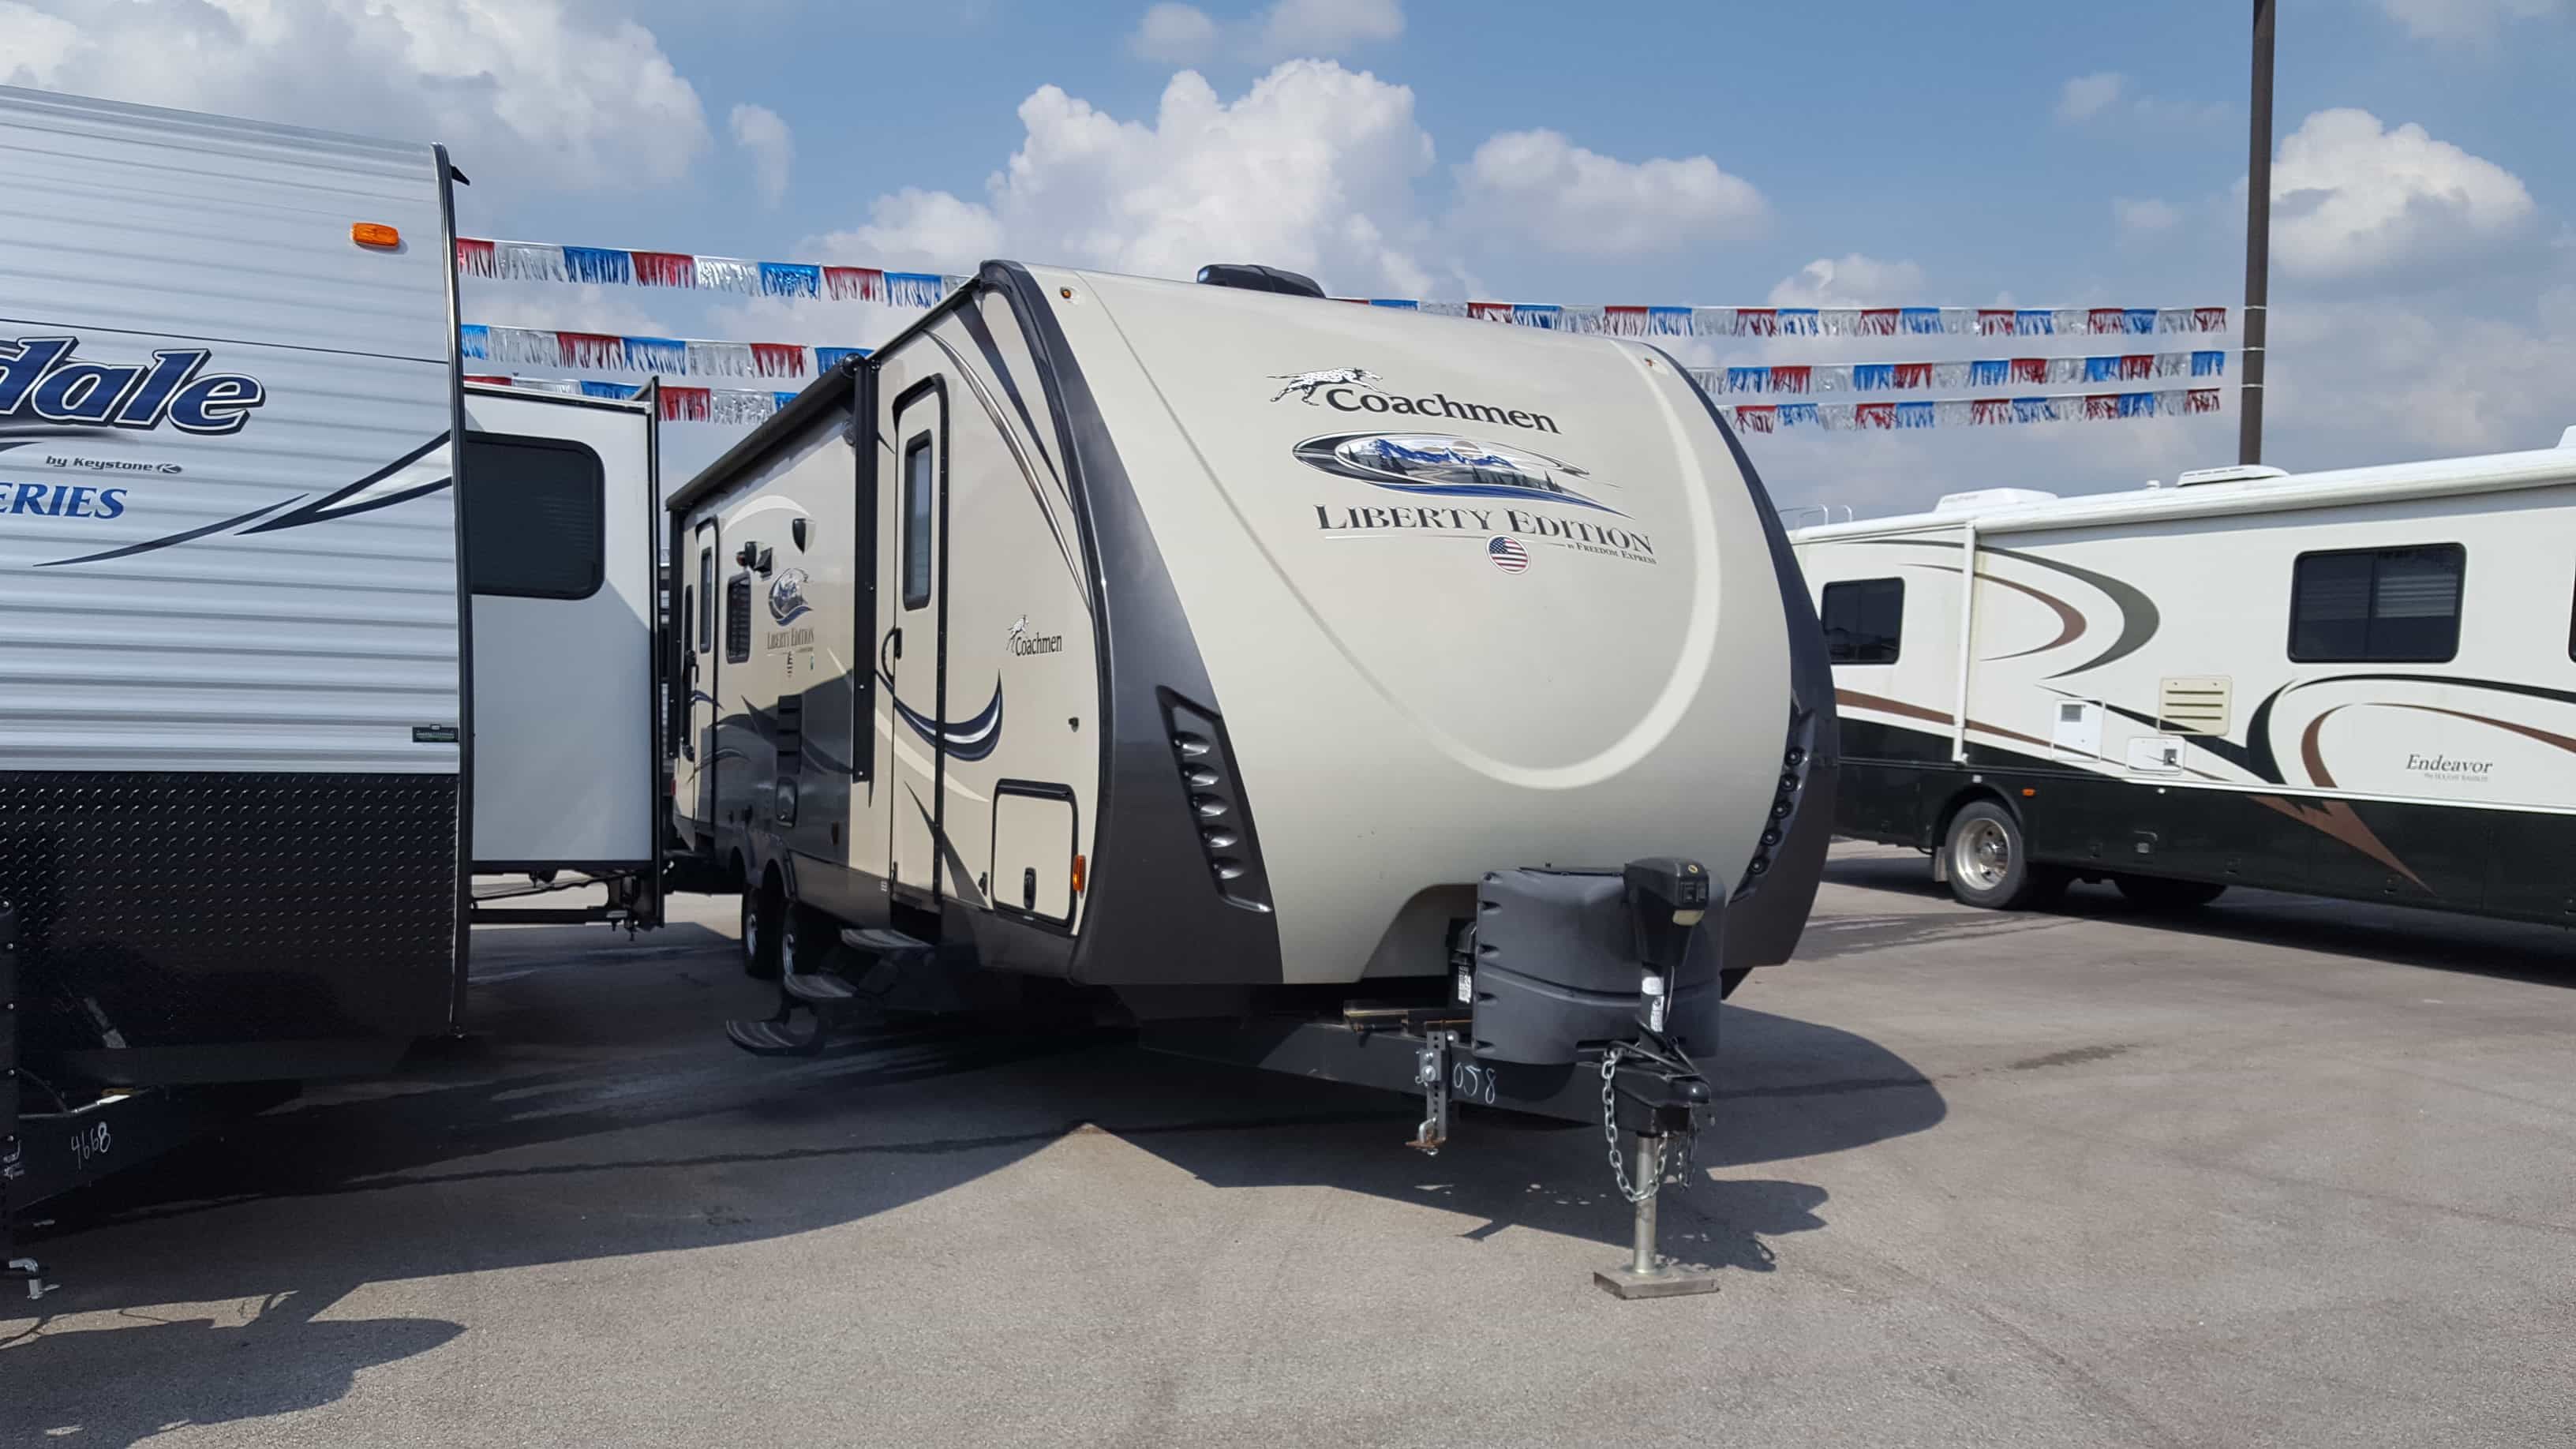 USED 2016 Coachmen FREEDOM EXPRESS 281RLDSLE - American RV